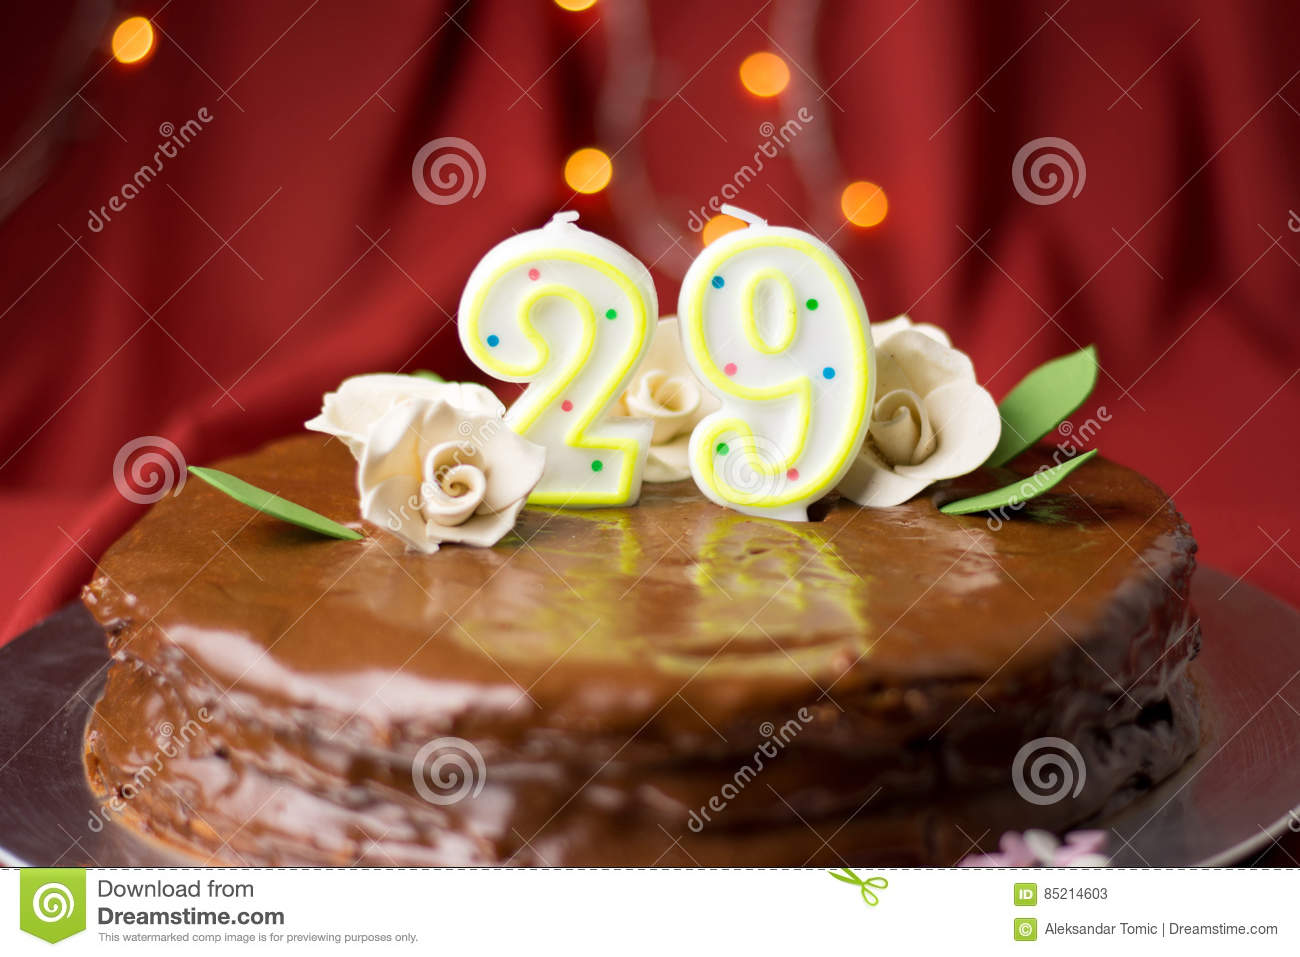 29th Birthday Cake Decorated With Edible Roses Stock Image Image